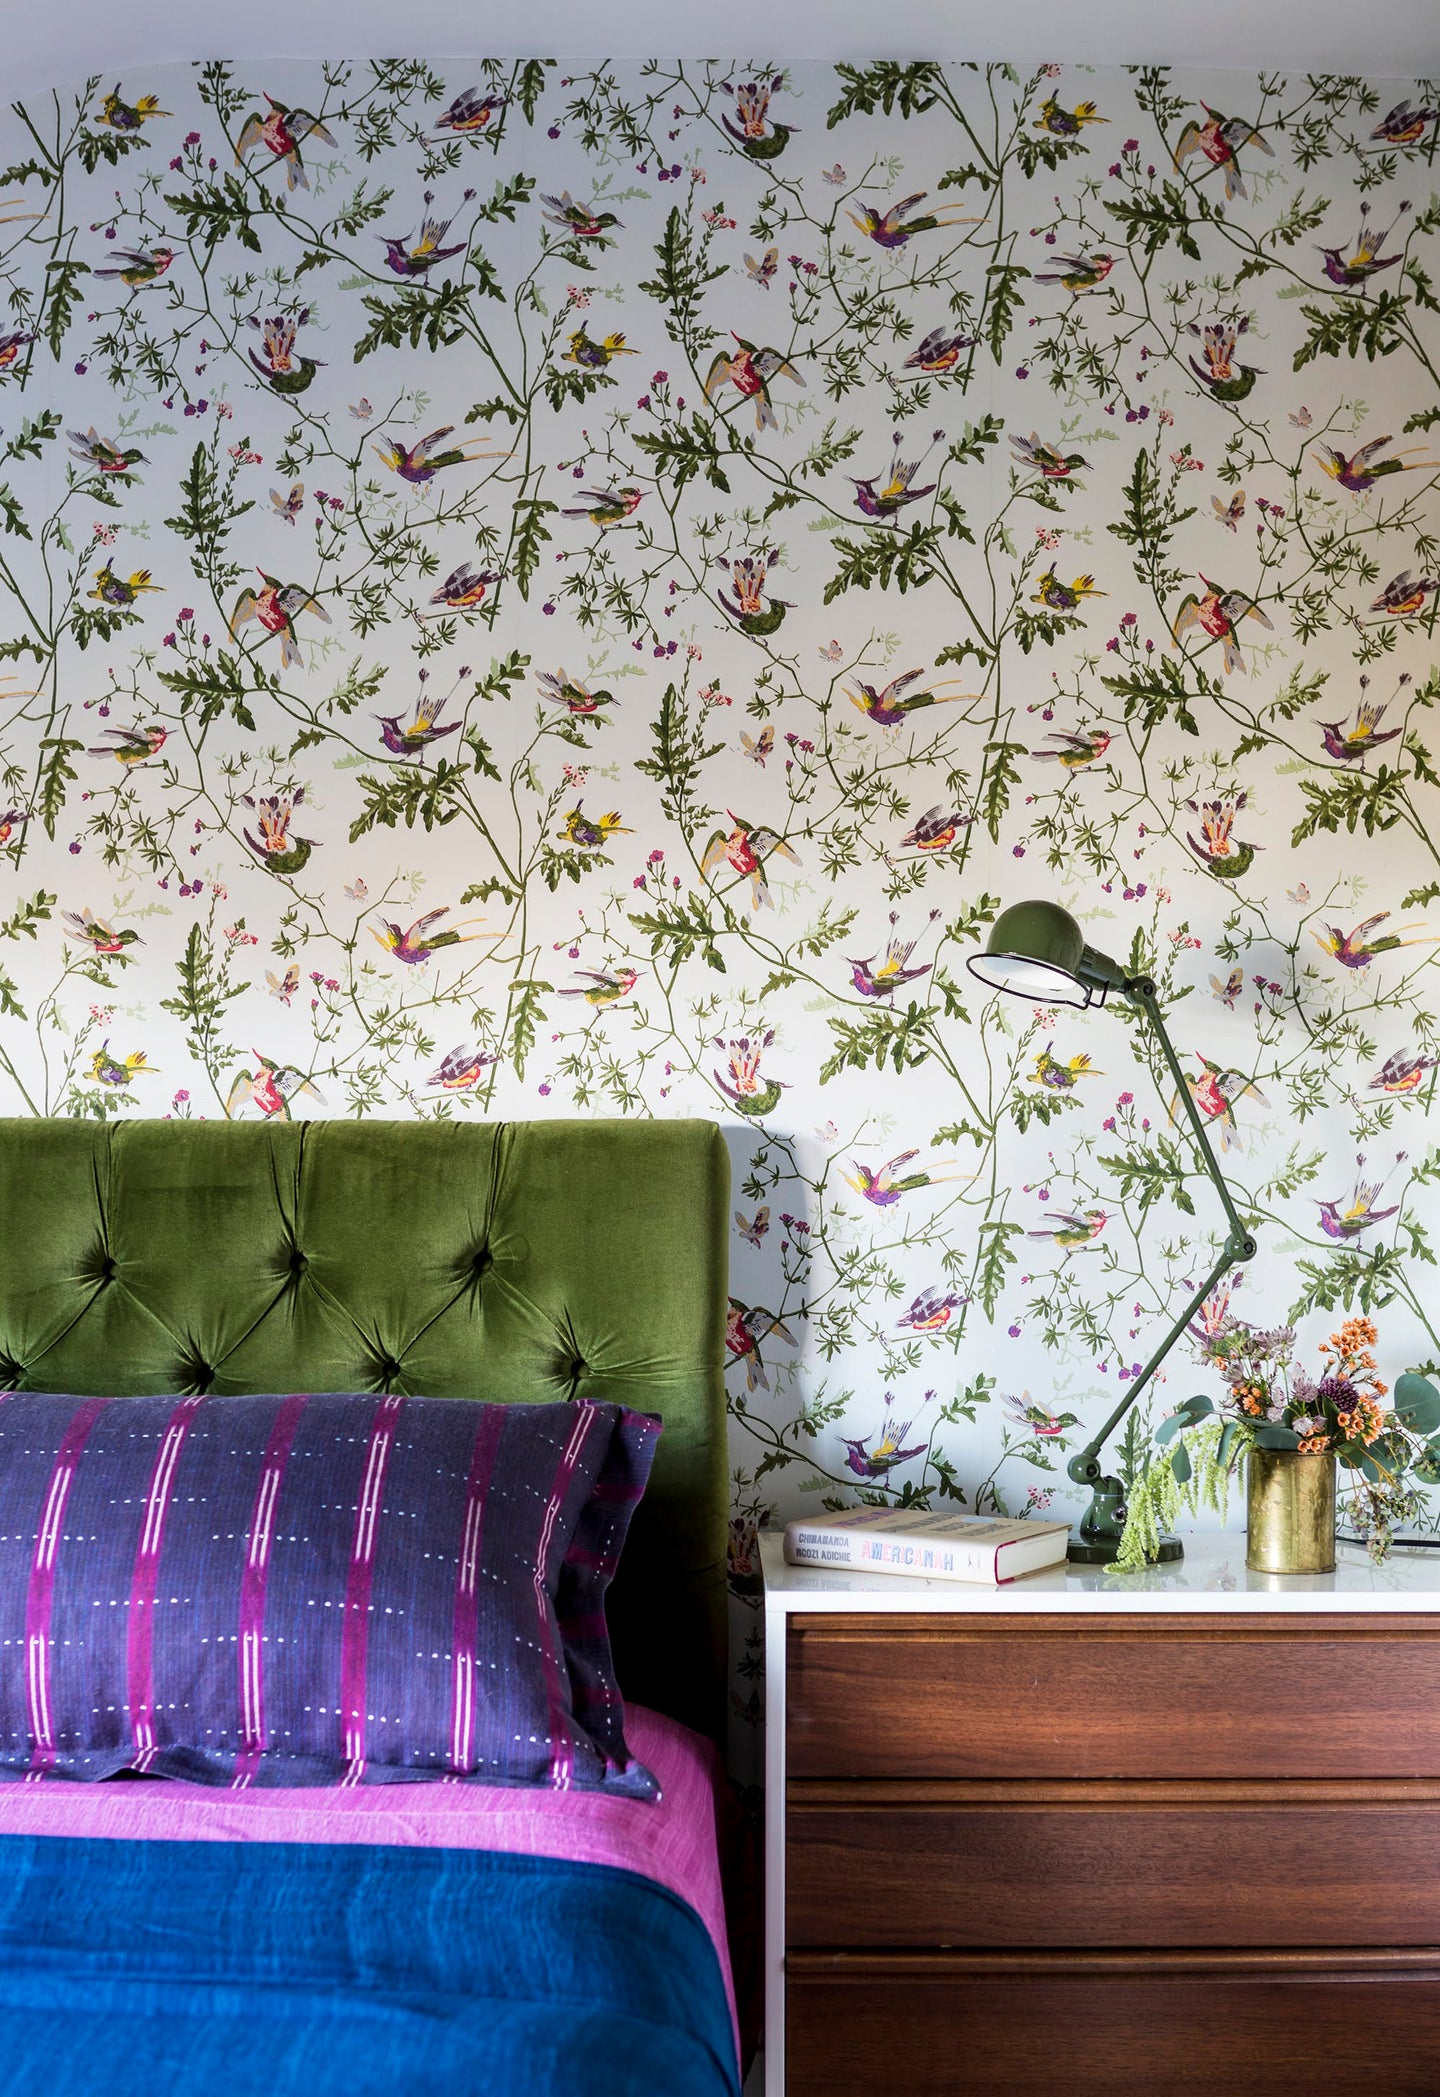 Bedroom with wallpaper and colorful bed